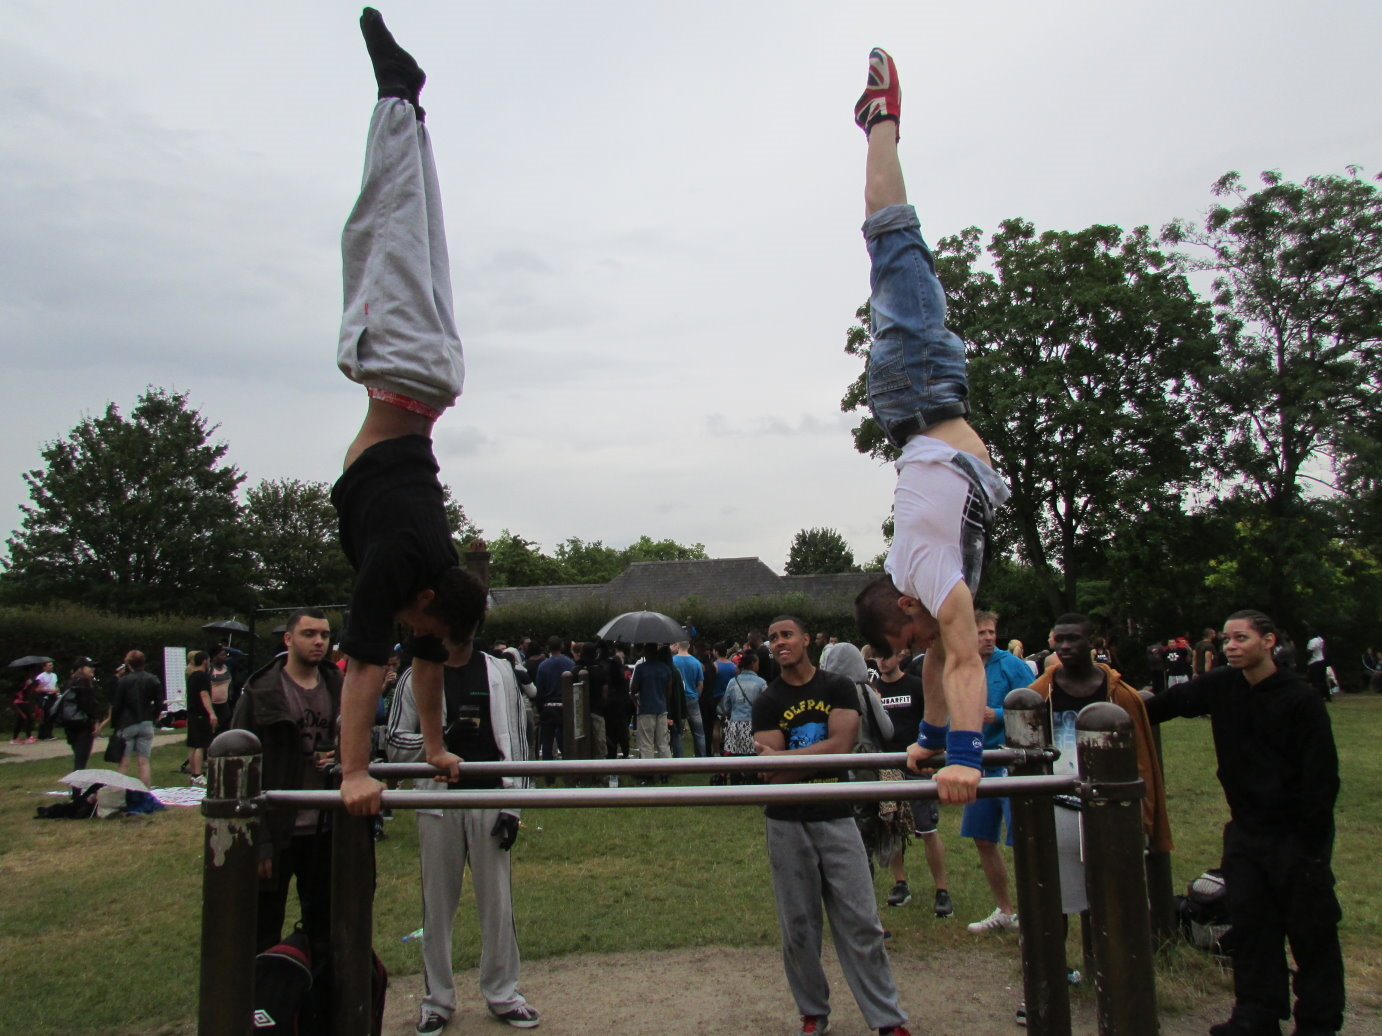 Street Workout - Handstand on Bar